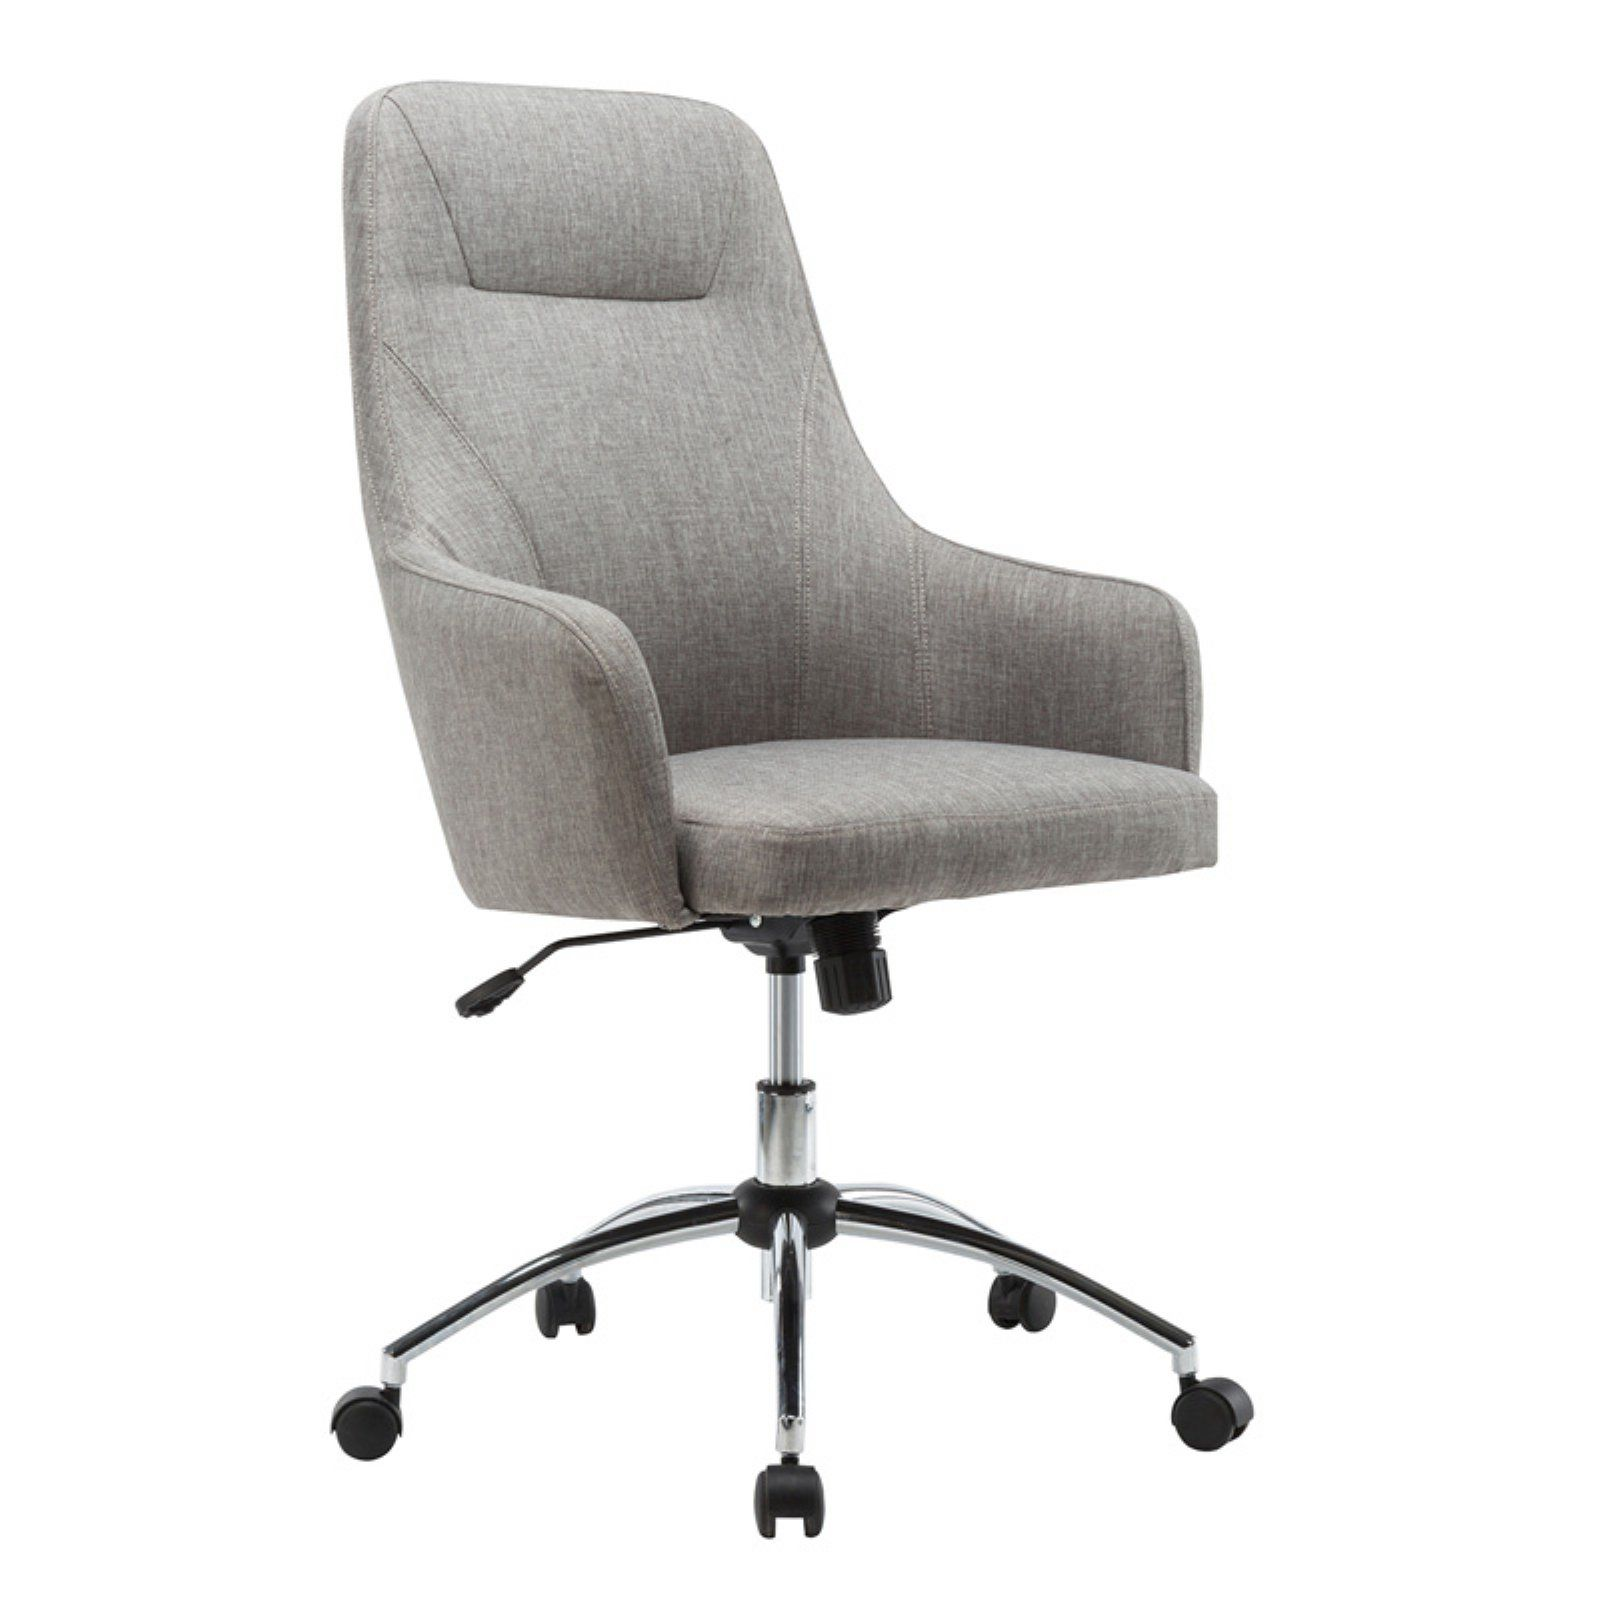 Techni Mobili Comfy Adjustable Height Office Desk Chair With